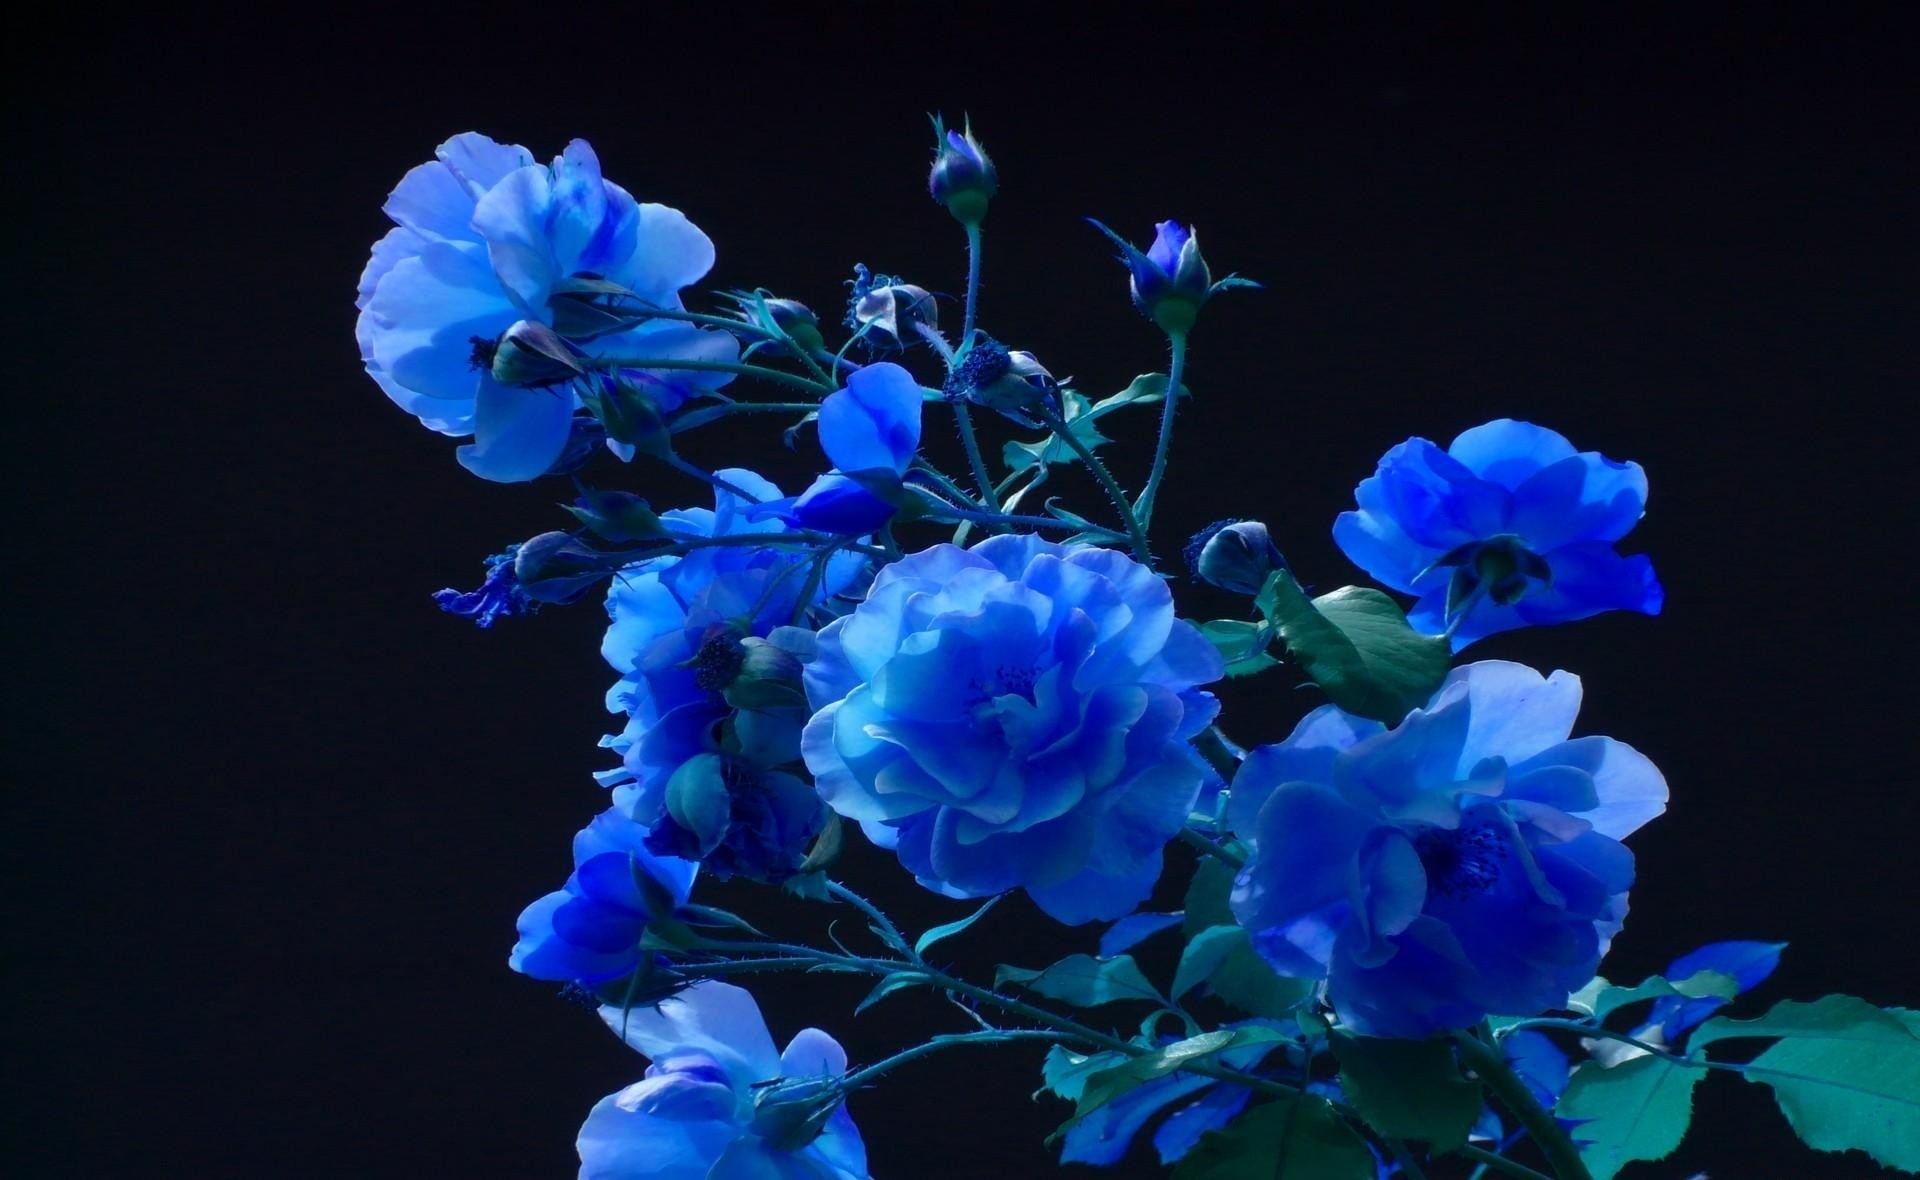 blue roses background (48+ images)